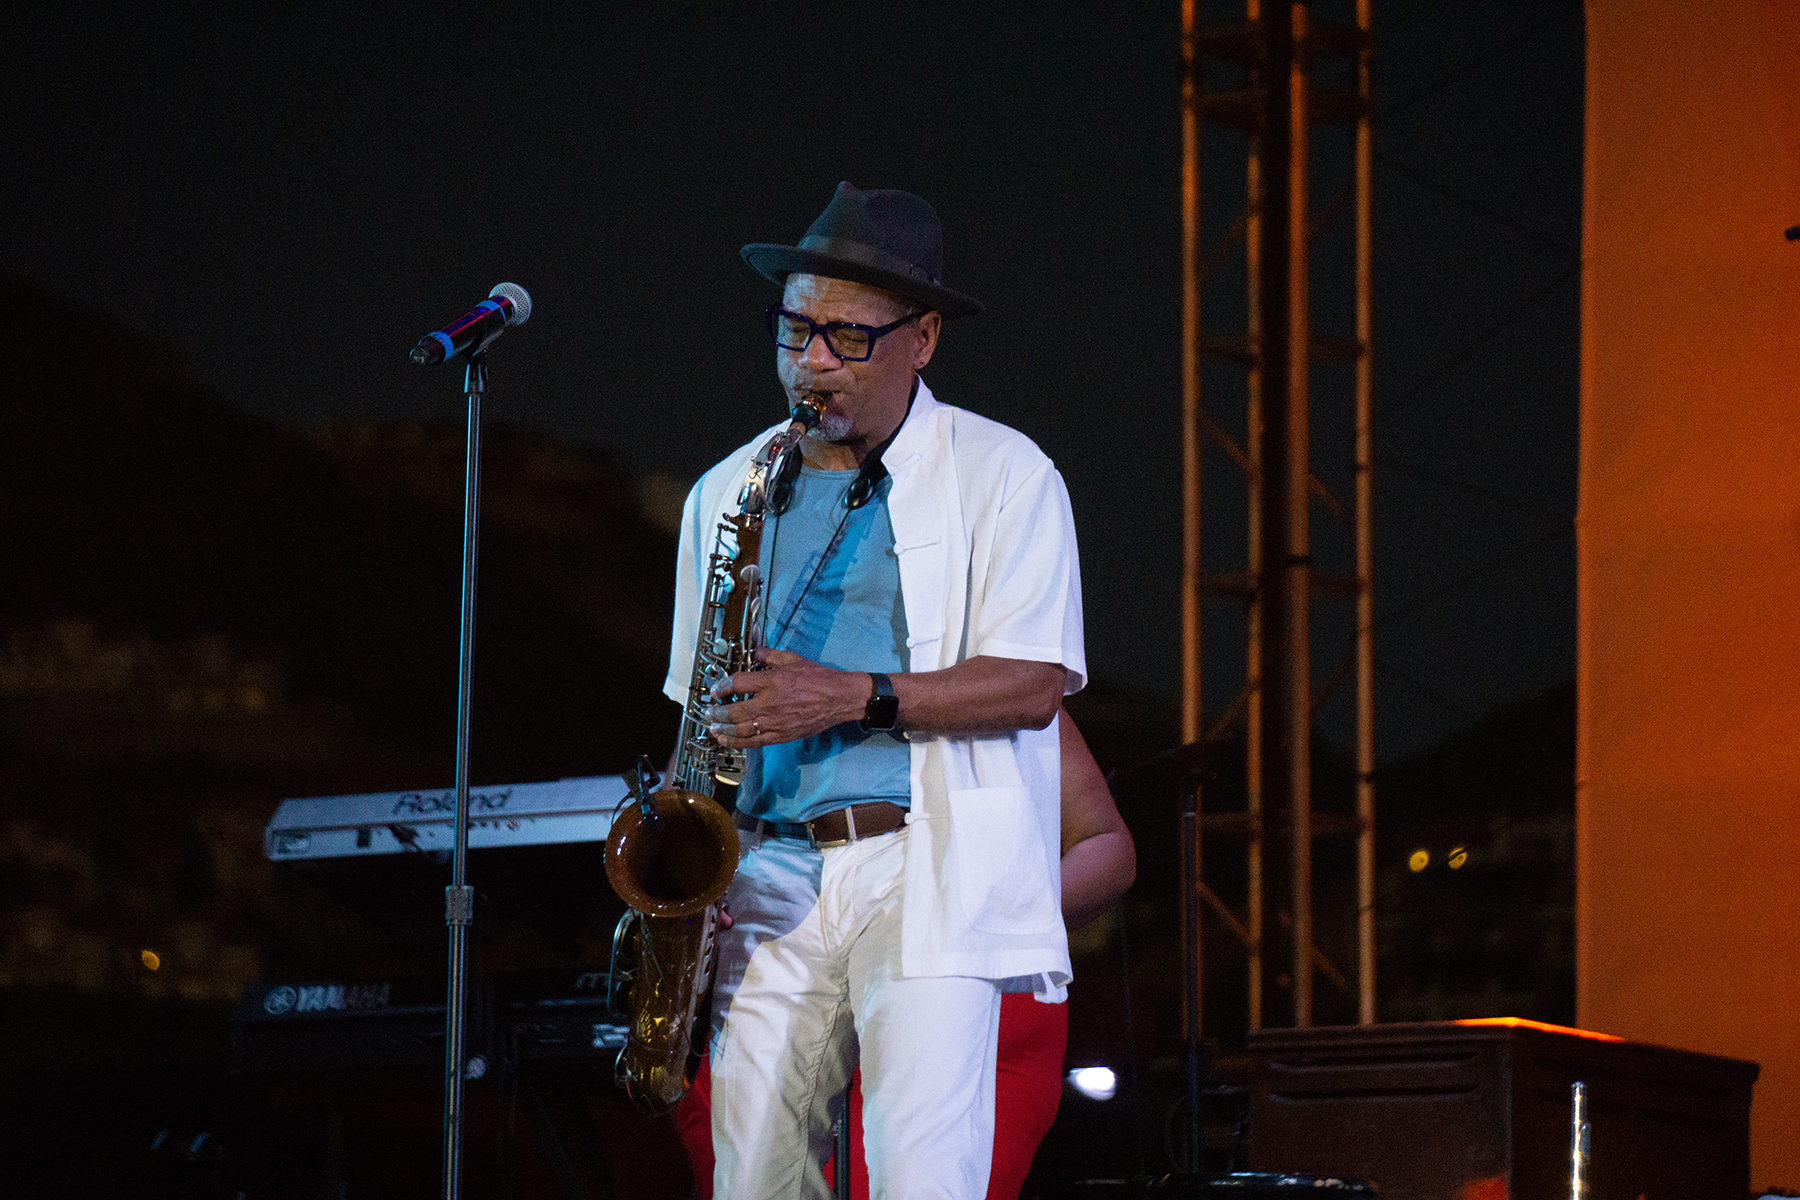 Saxophonist Kirk Whalum Takes The Crowd To Church At Life Luxe Jazz